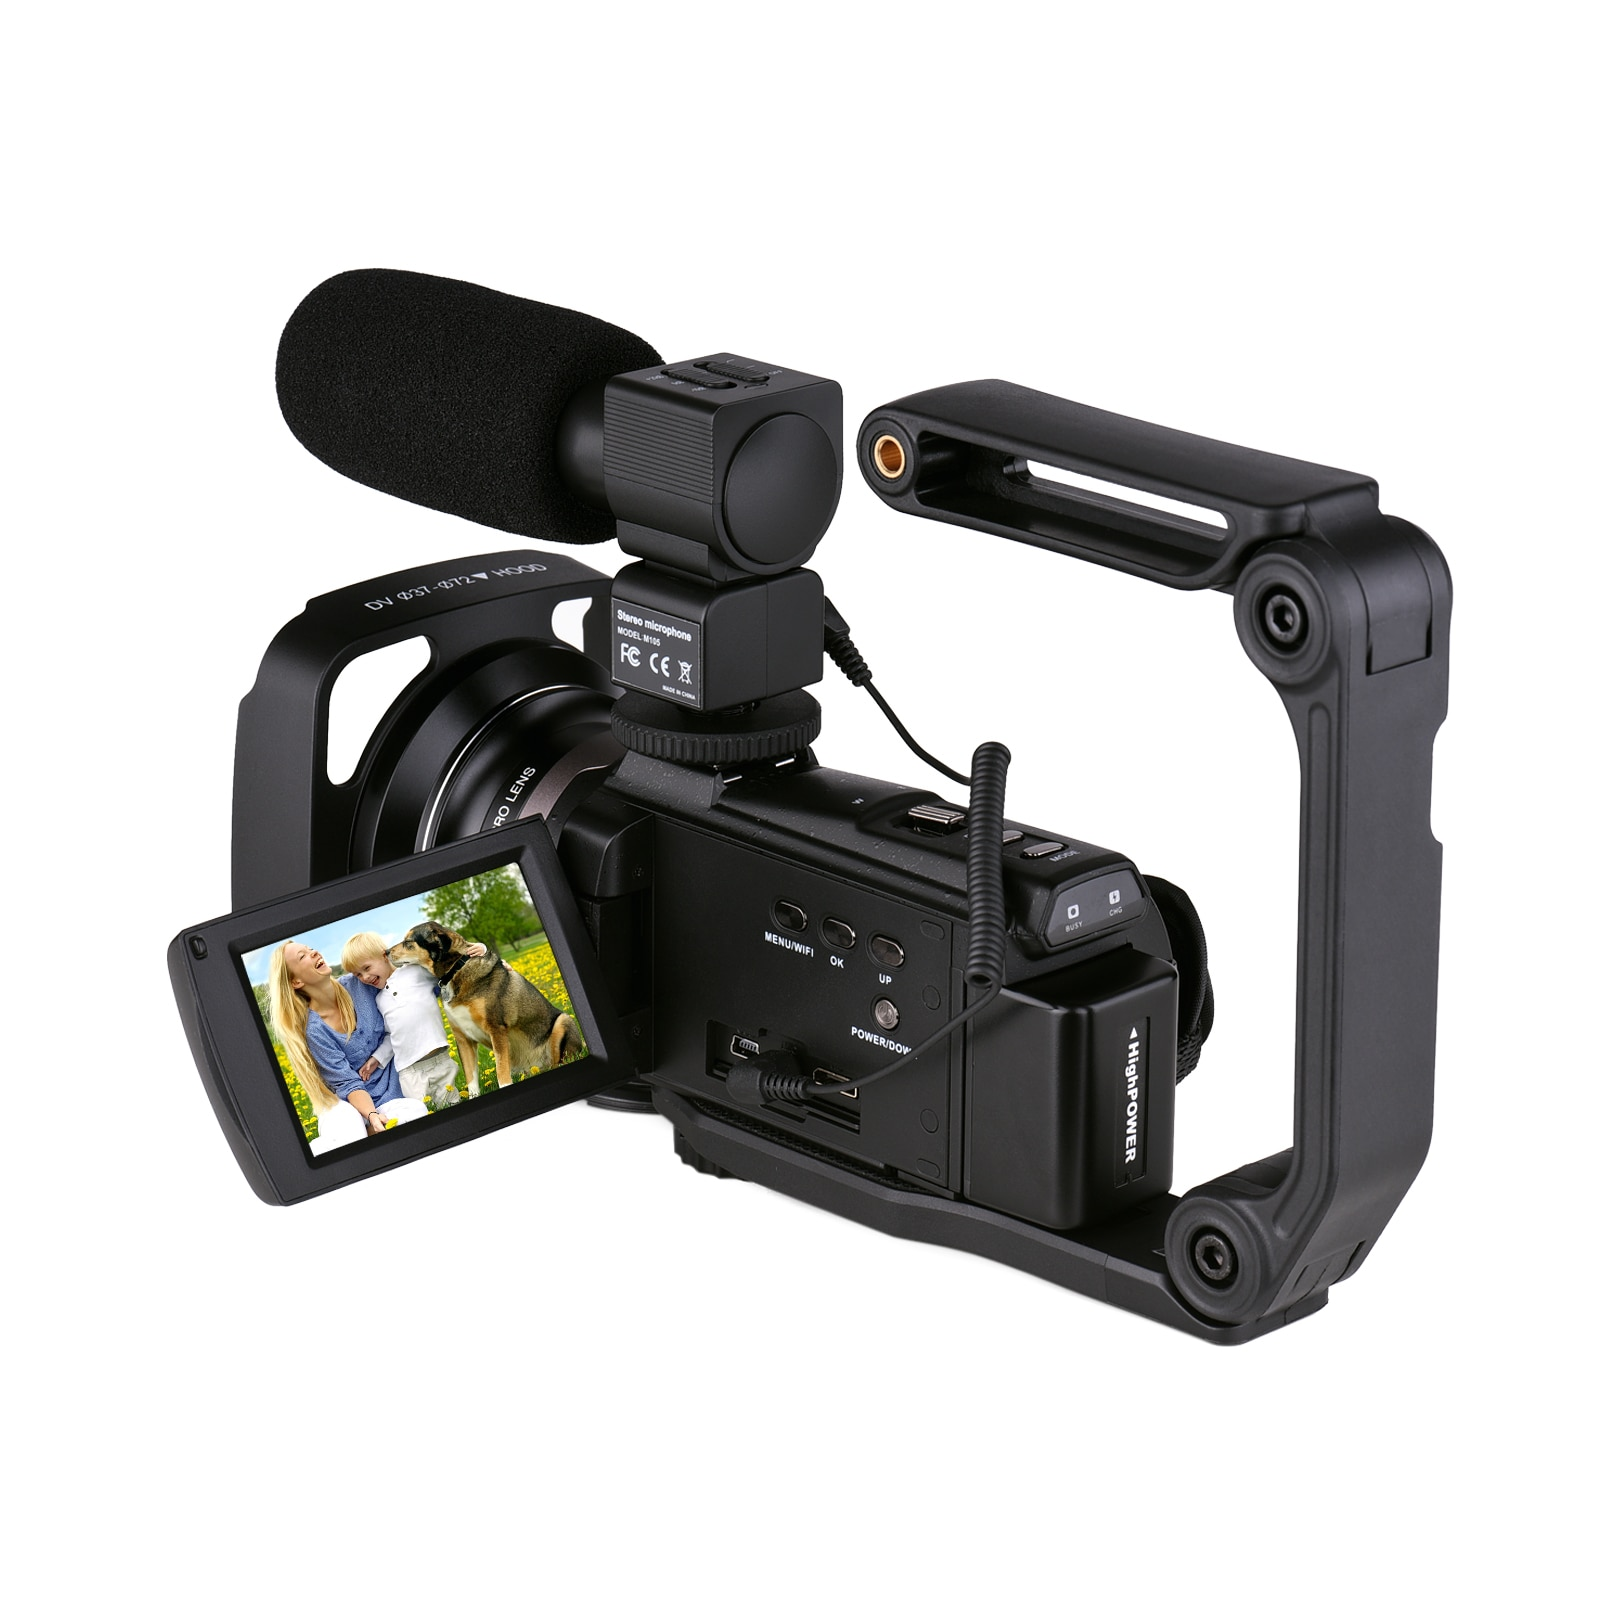 Andoer 4K 60FPS Ultra HD Digital Video Camera DV Camcorder 48MP 16X Zoom 3-inch Rotatable LCD Touch Screen WiFi IR Night Vision